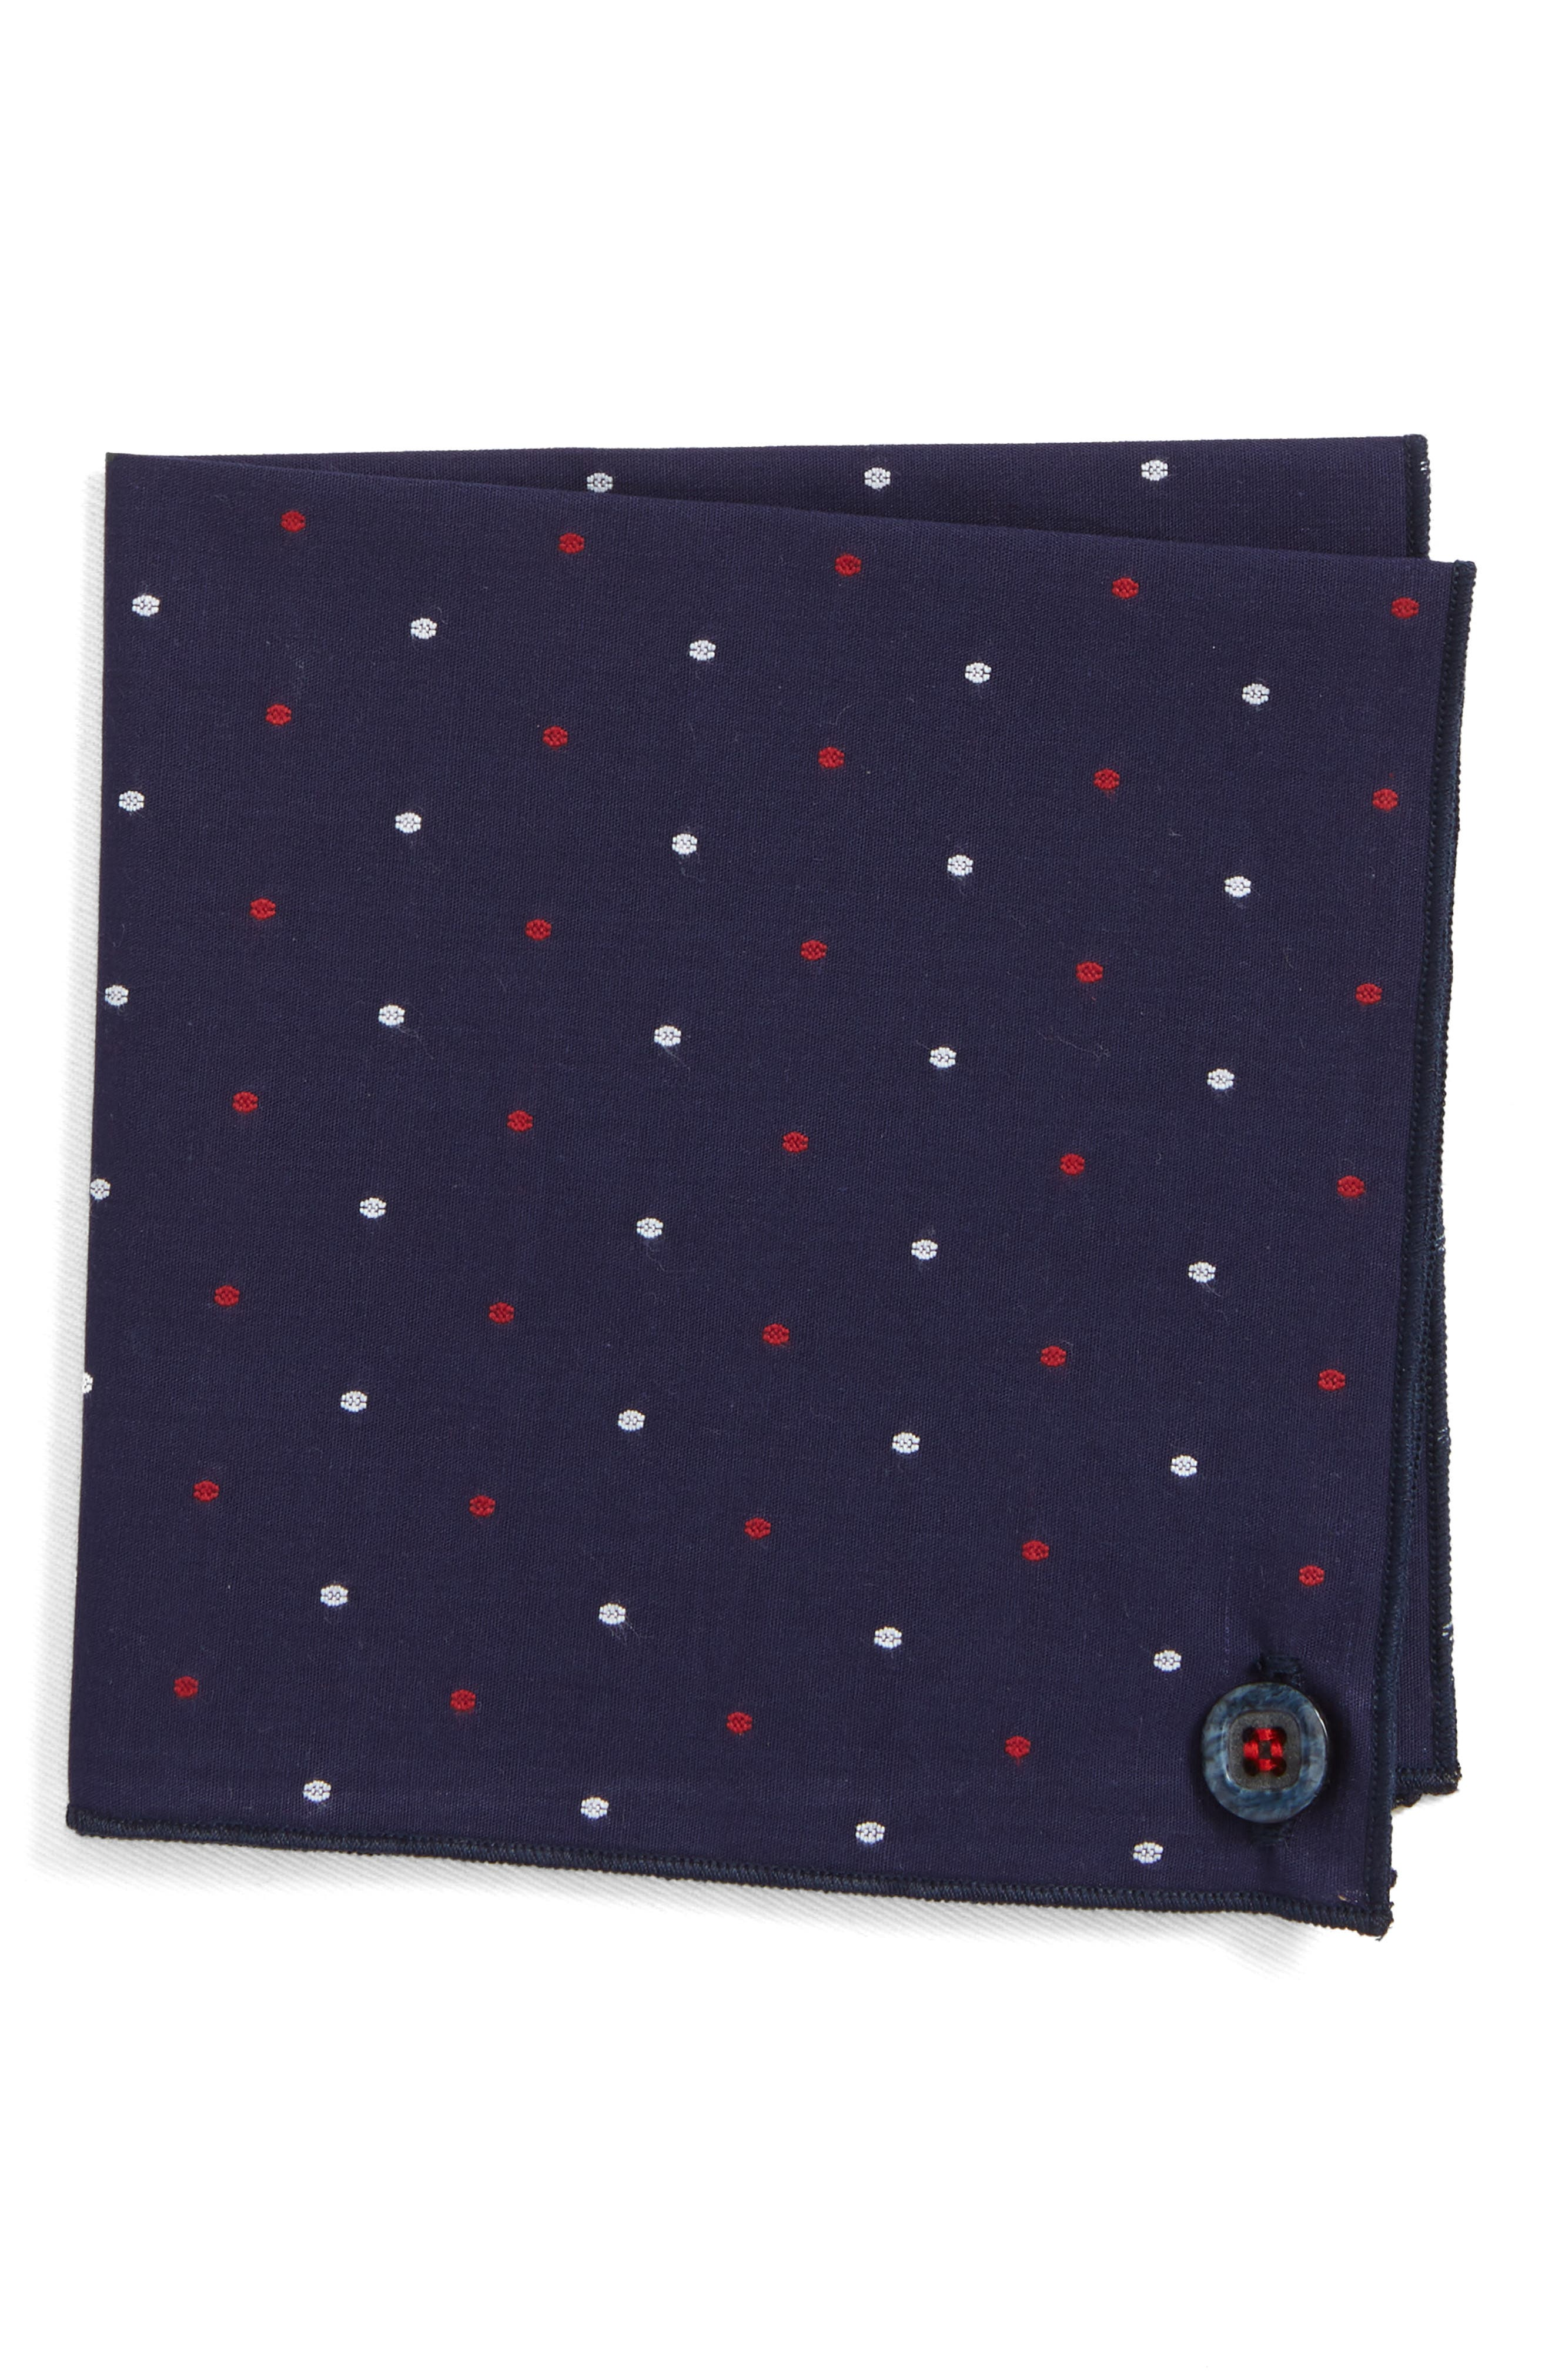 Navy Lee Cotton Pocket Square,                         Main,                         color, 410